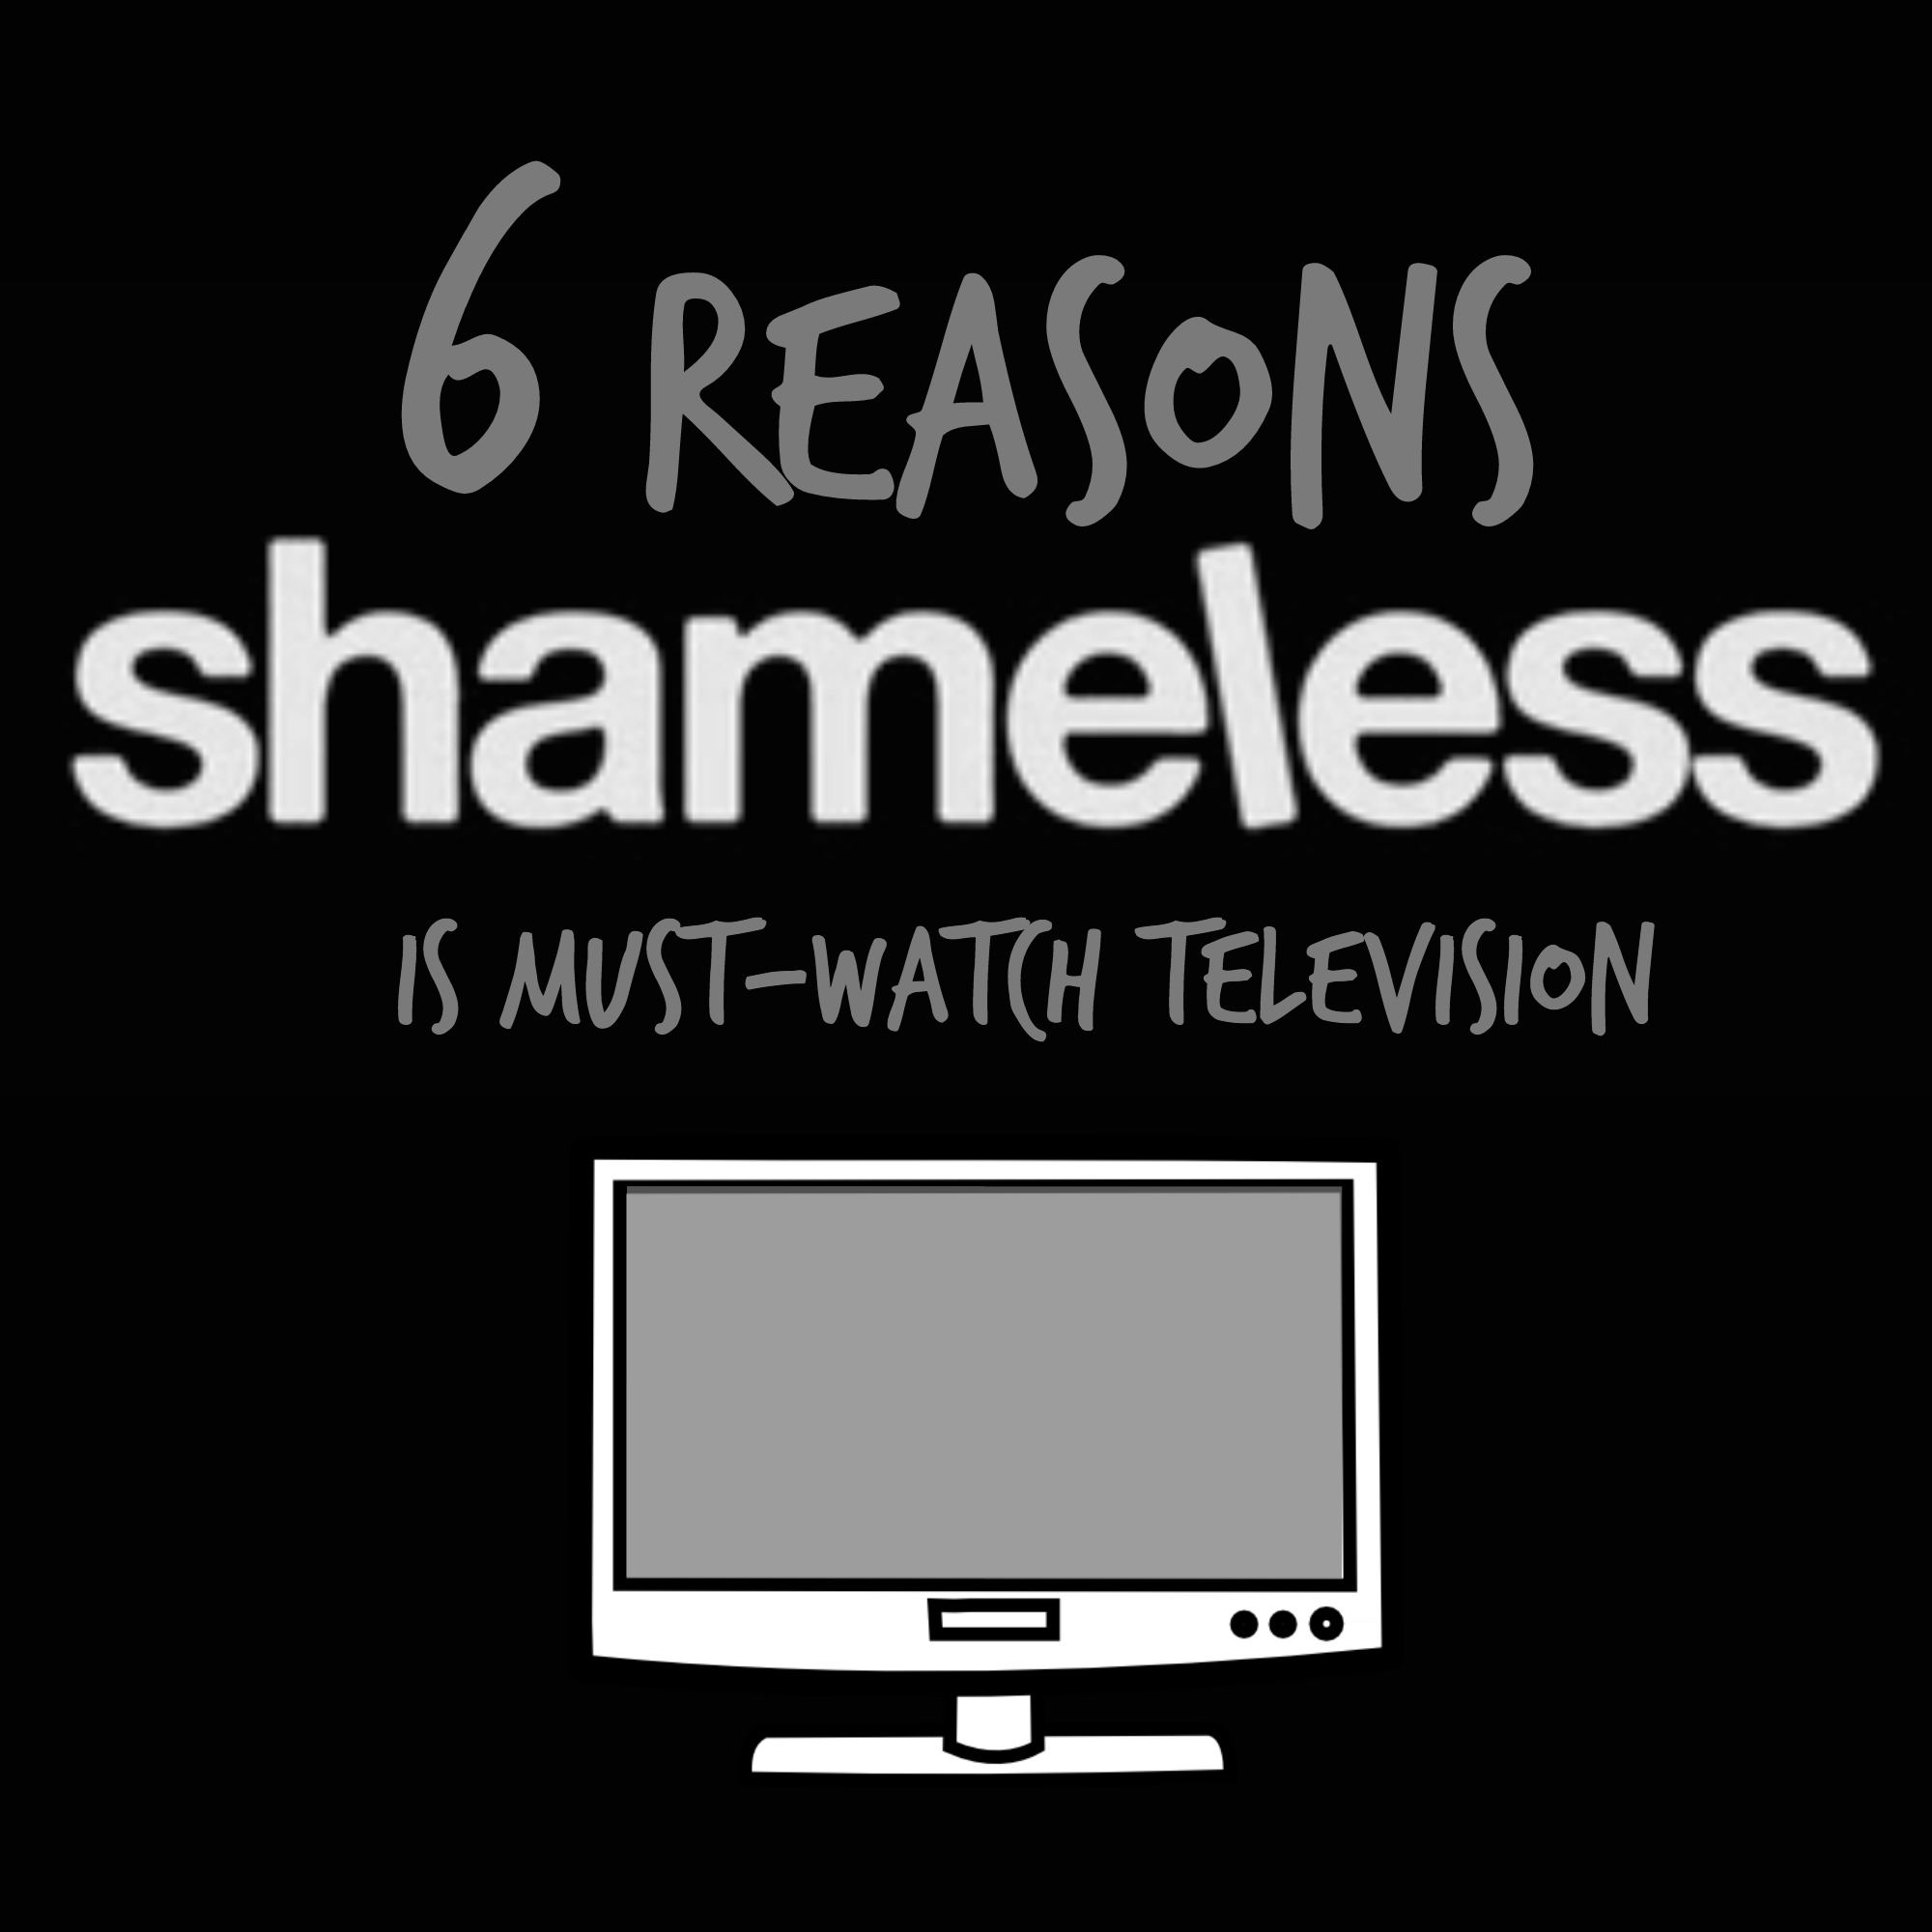 6-reasons-shameless-is-must-watch-television